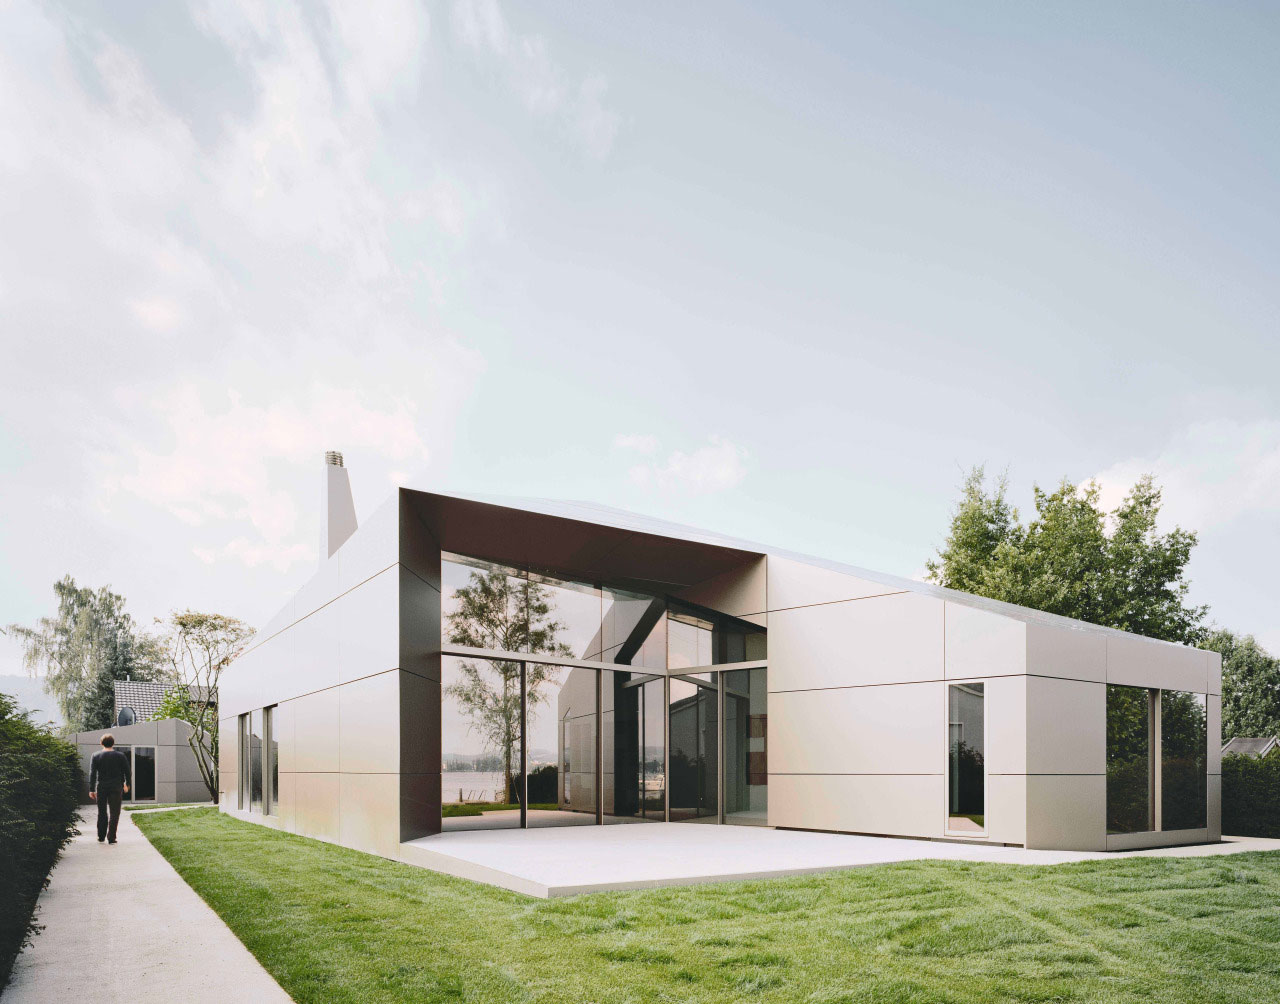 Villa, Moos, Biehler, Weith, Associated, Alucobond, Plus, Anodized, Lake, Constance, Photography, Brigida, Gonzalez